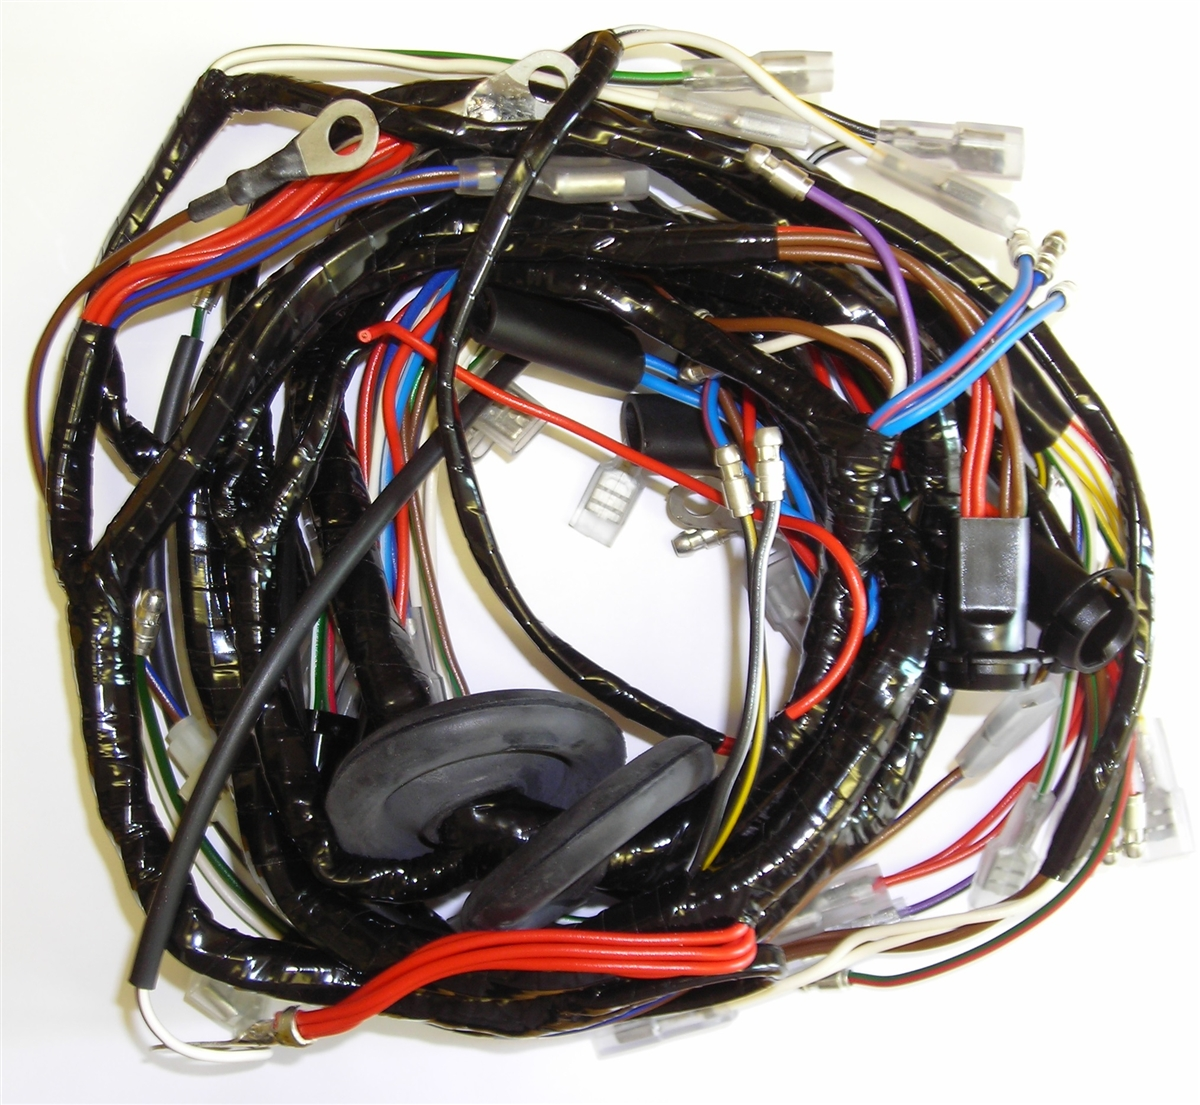 1973-1975 Triumph T120V, T140V, & TR7RV Main Harness (MC71PP) on oxygen sensor extension harness, obd0 to obd1 conversion harness, fall protection harness, engine harness, suspension harness, maxi-seal harness, pony harness, radio harness, alpine stereo harness, safety harness, pet harness, cable harness, electrical harness, battery harness, nakamichi harness, dog harness, amp bypass harness,